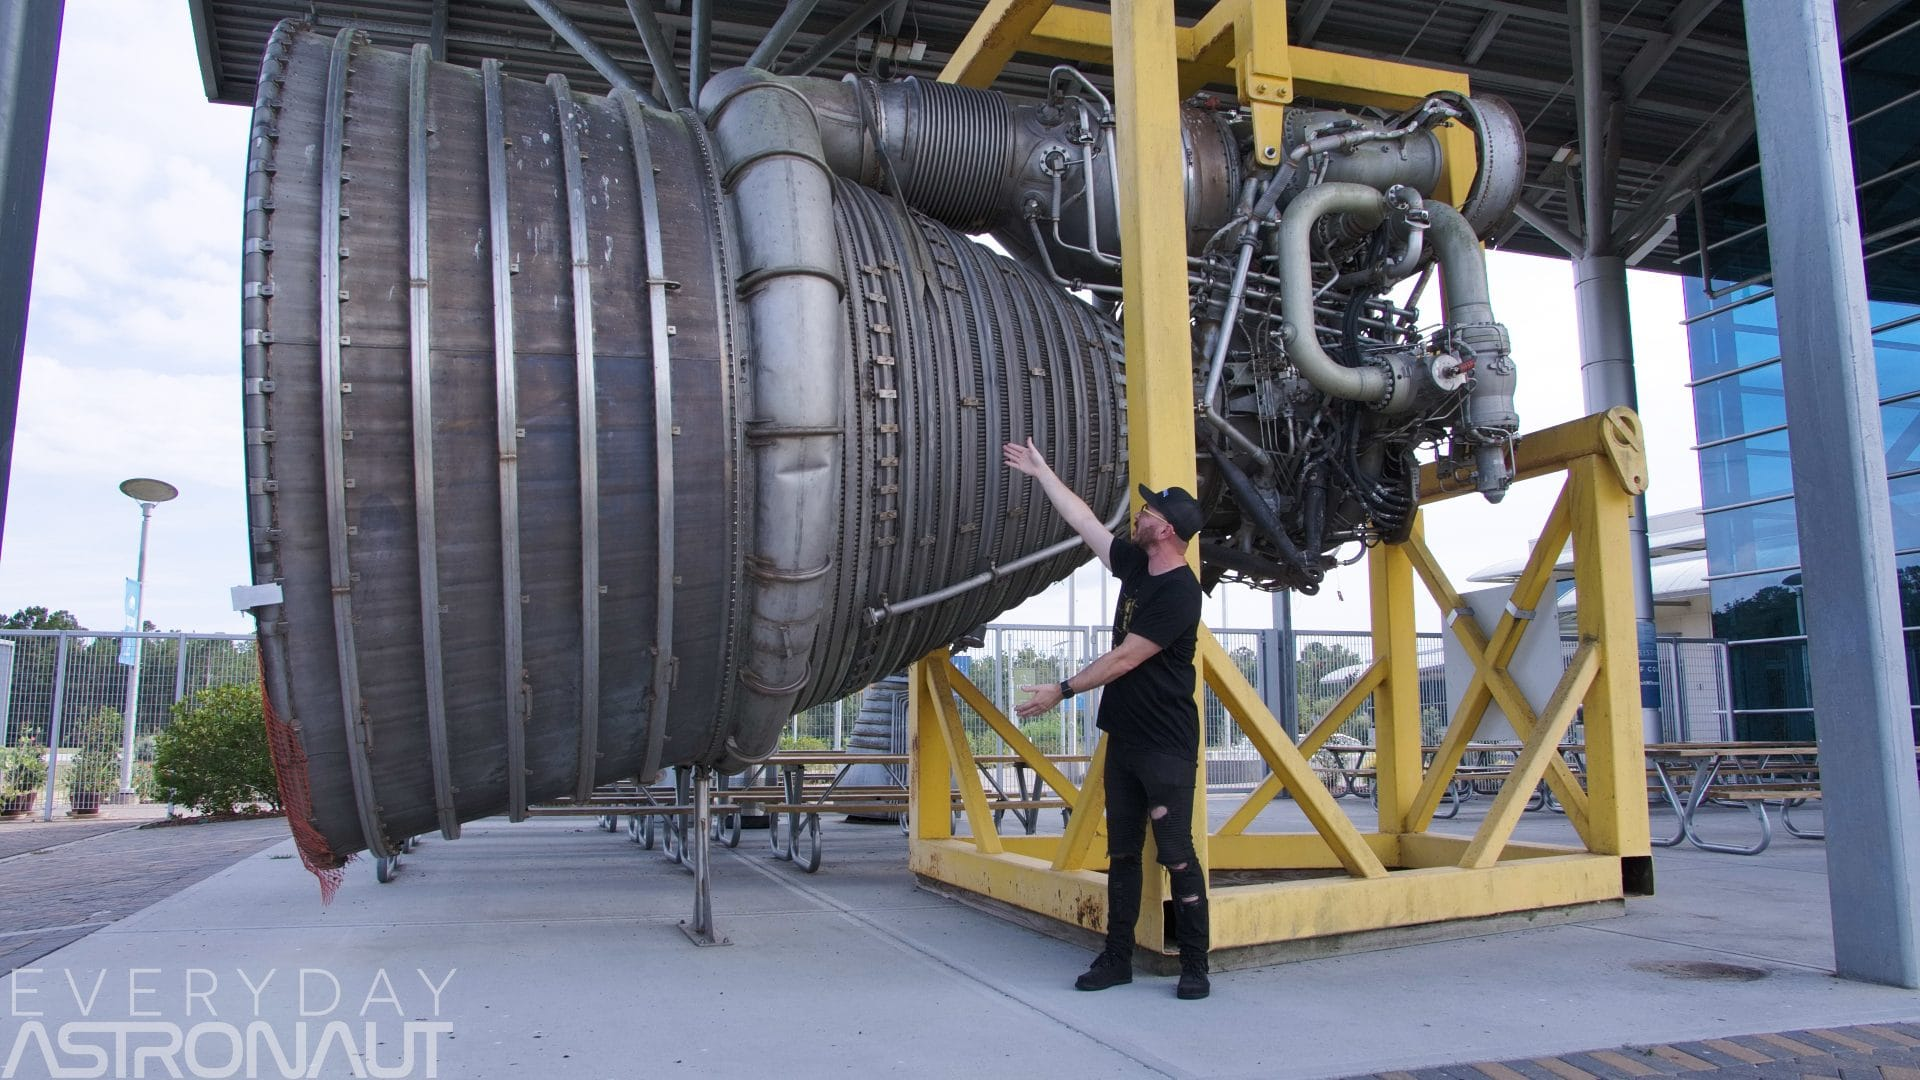 F-1 Rocket engine size scale human Infinity Science Center Stennis Space Center Tim Dodd Everyday Astronaut